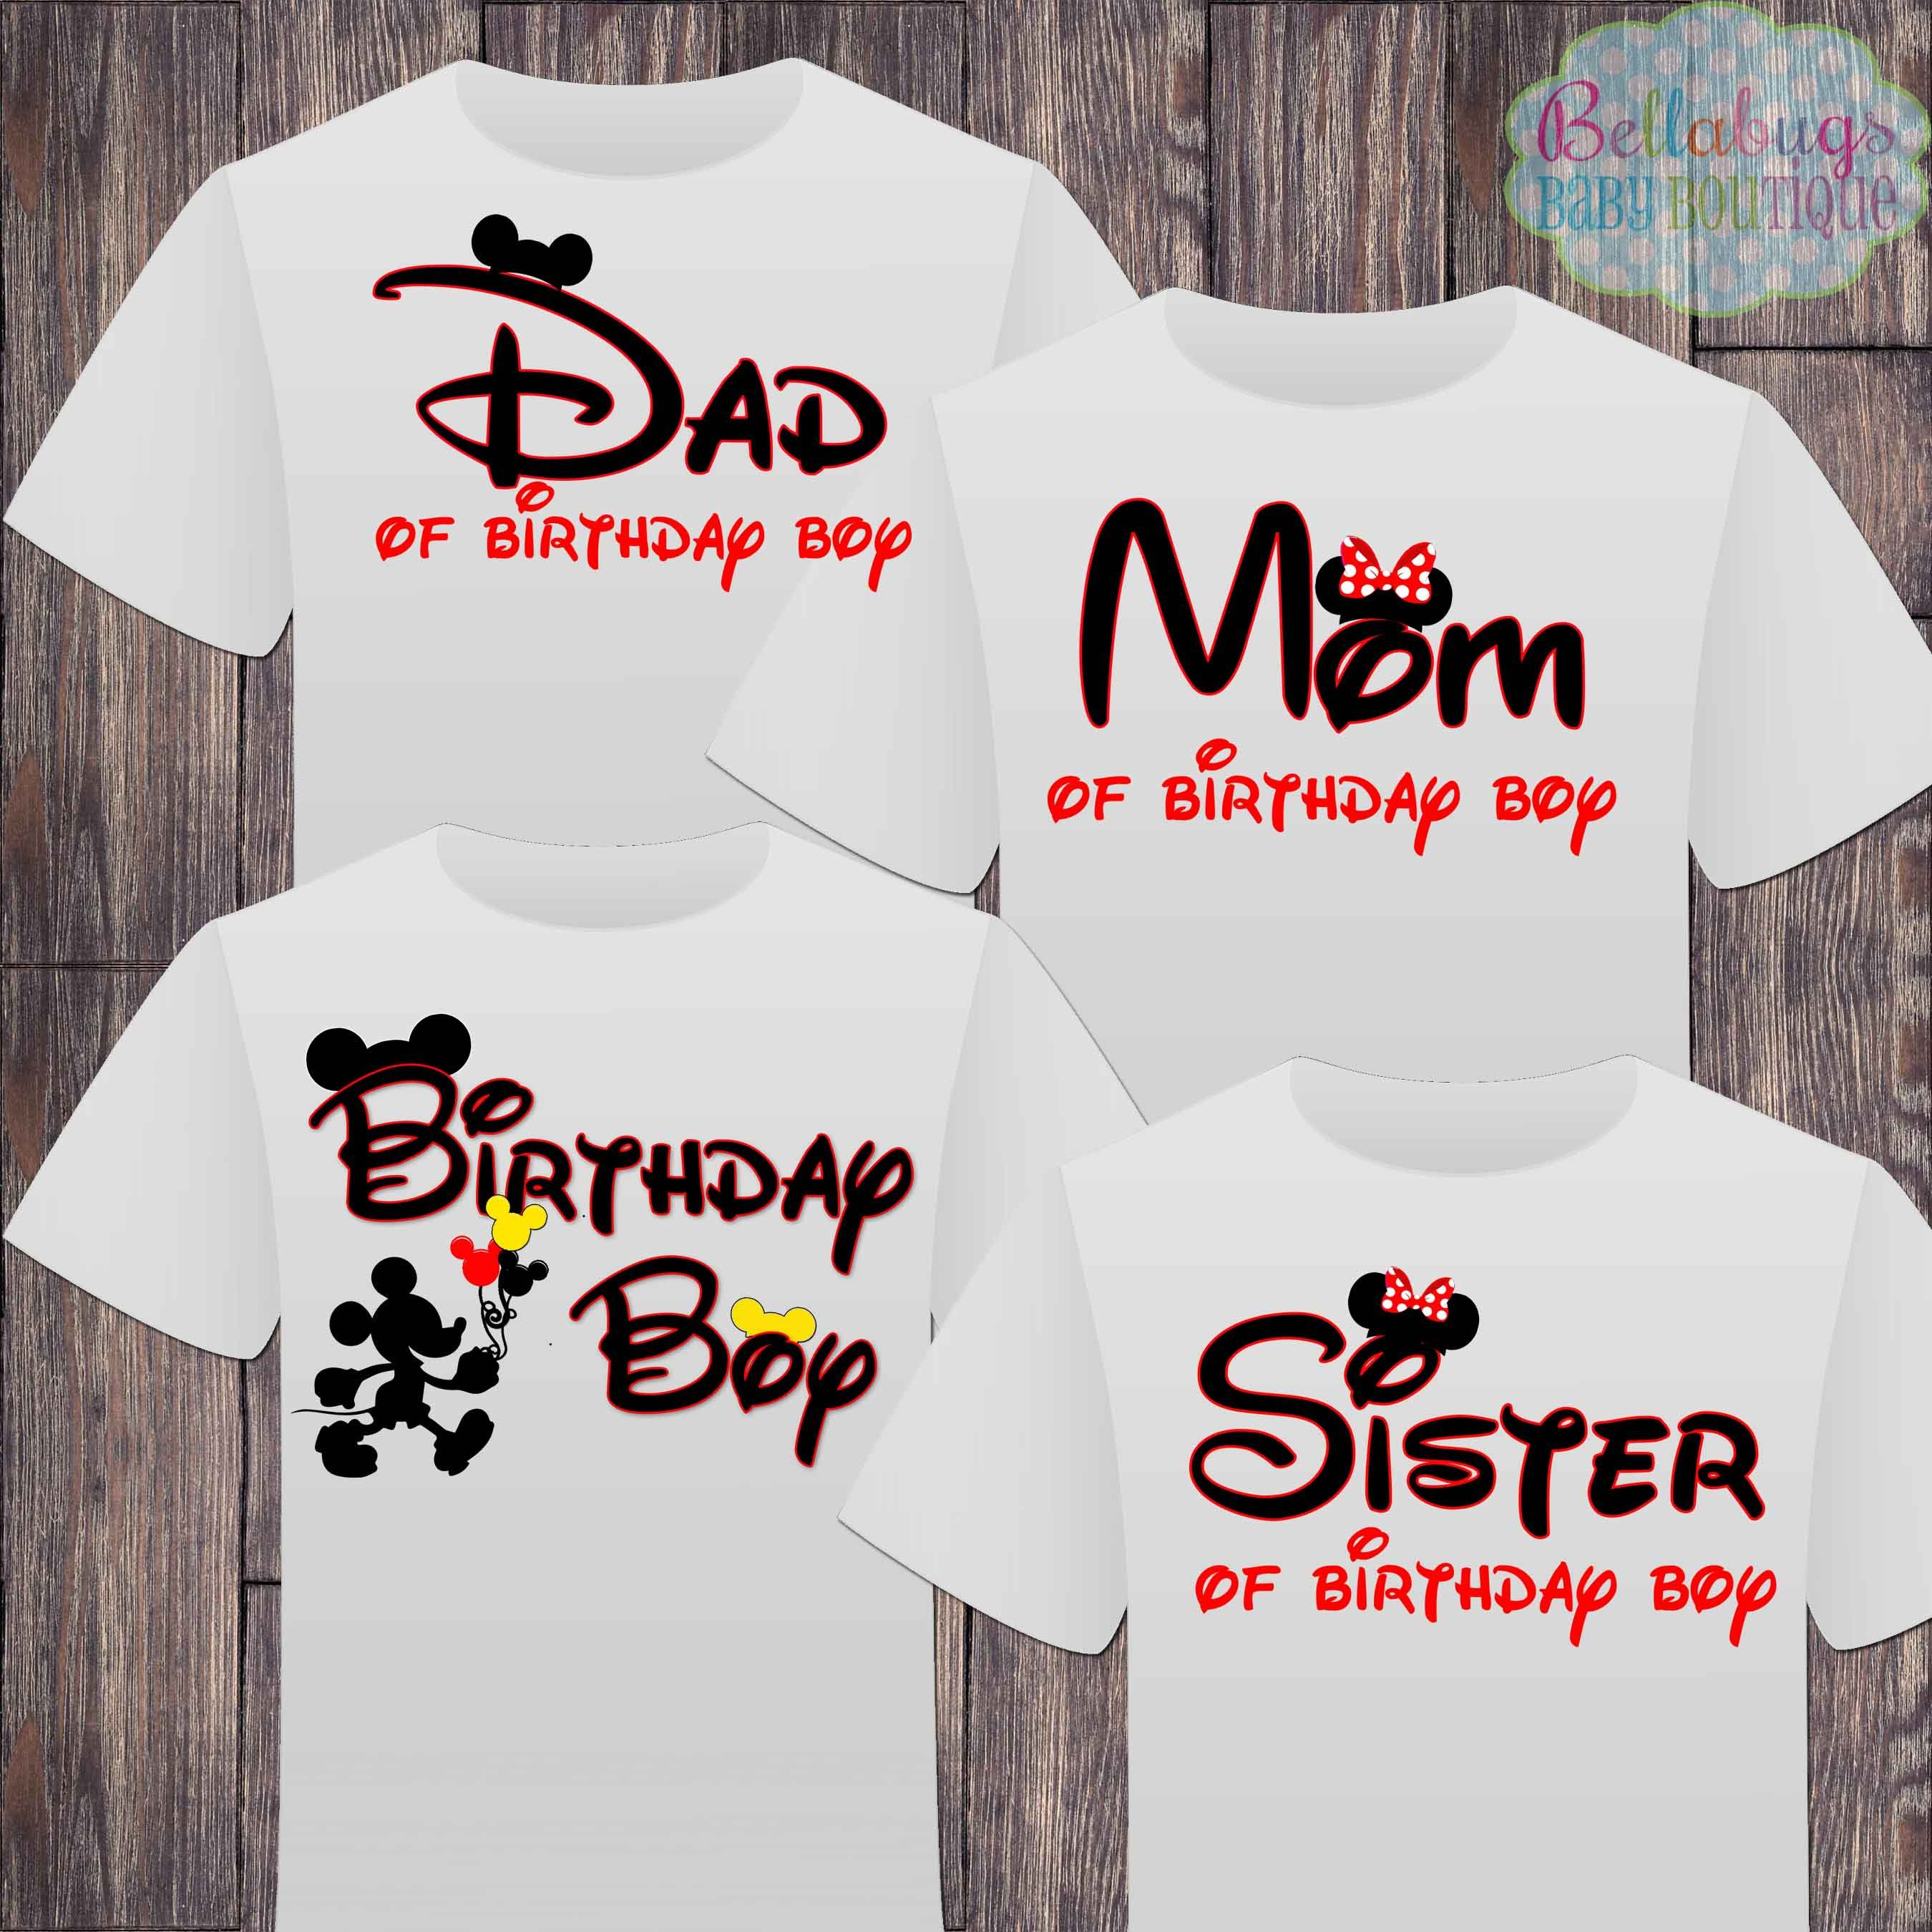 e0b82a39e Matching Disney Family Birthday Boy Tshirts - Mickey Minnie Mouse Birthday  Girl - Disney Inspired - Matching Birthday Shirts - Minnie Mouse by  BellabugsBaby ...